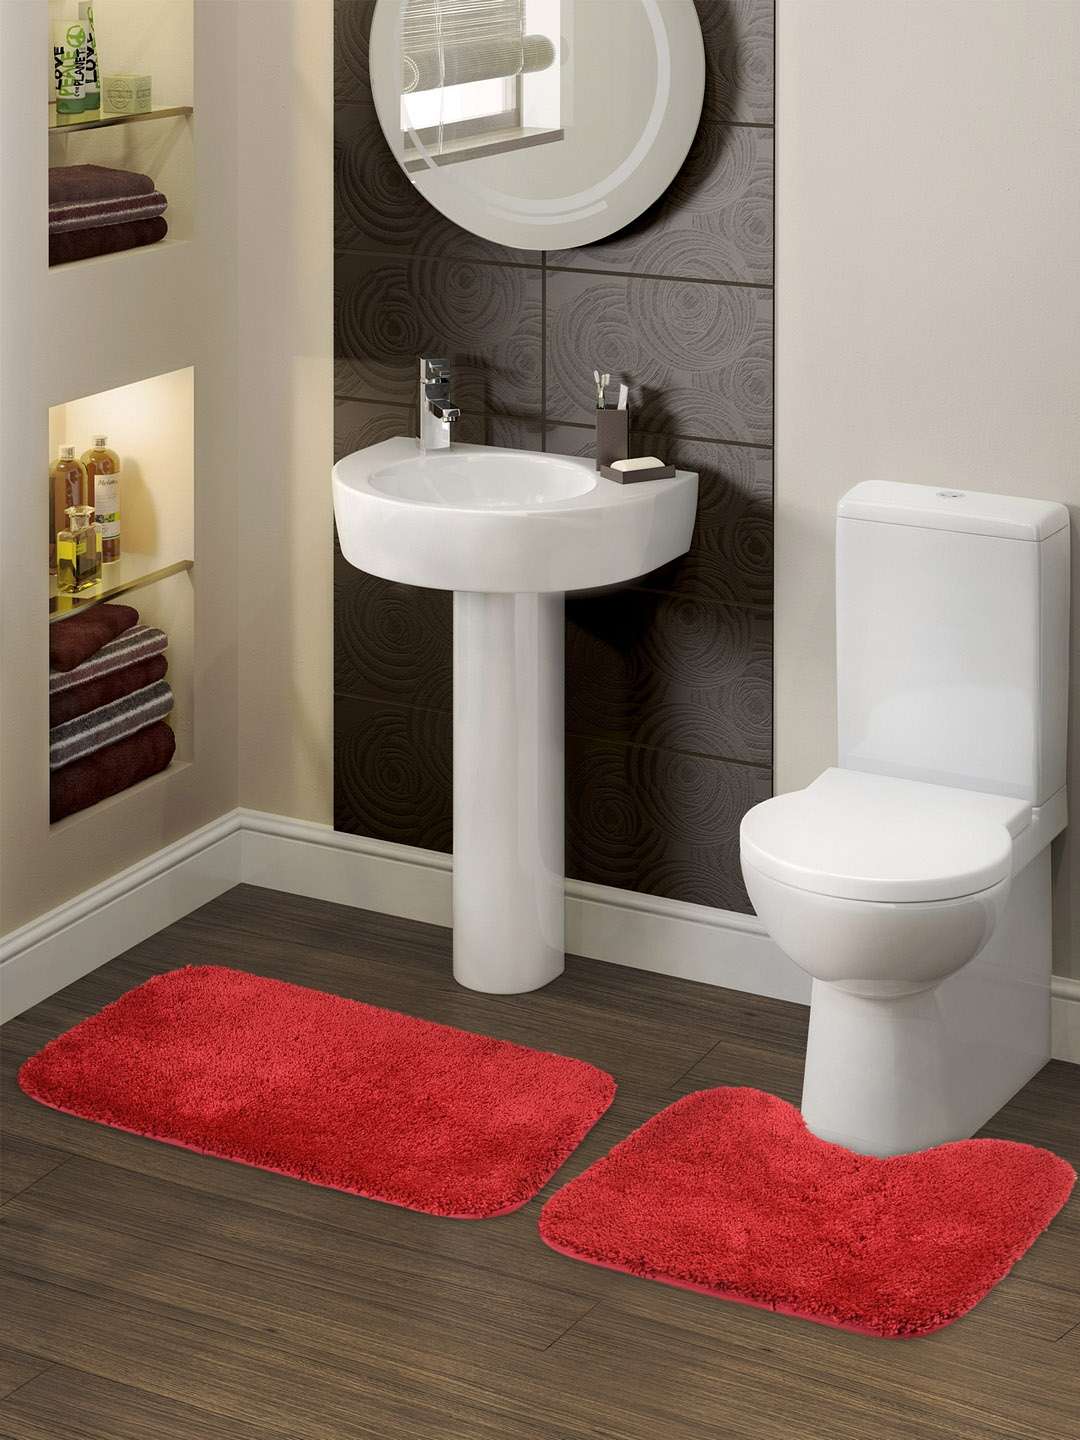 SPACES Set Of 2 Red Solid Luxury Small Bath Mats